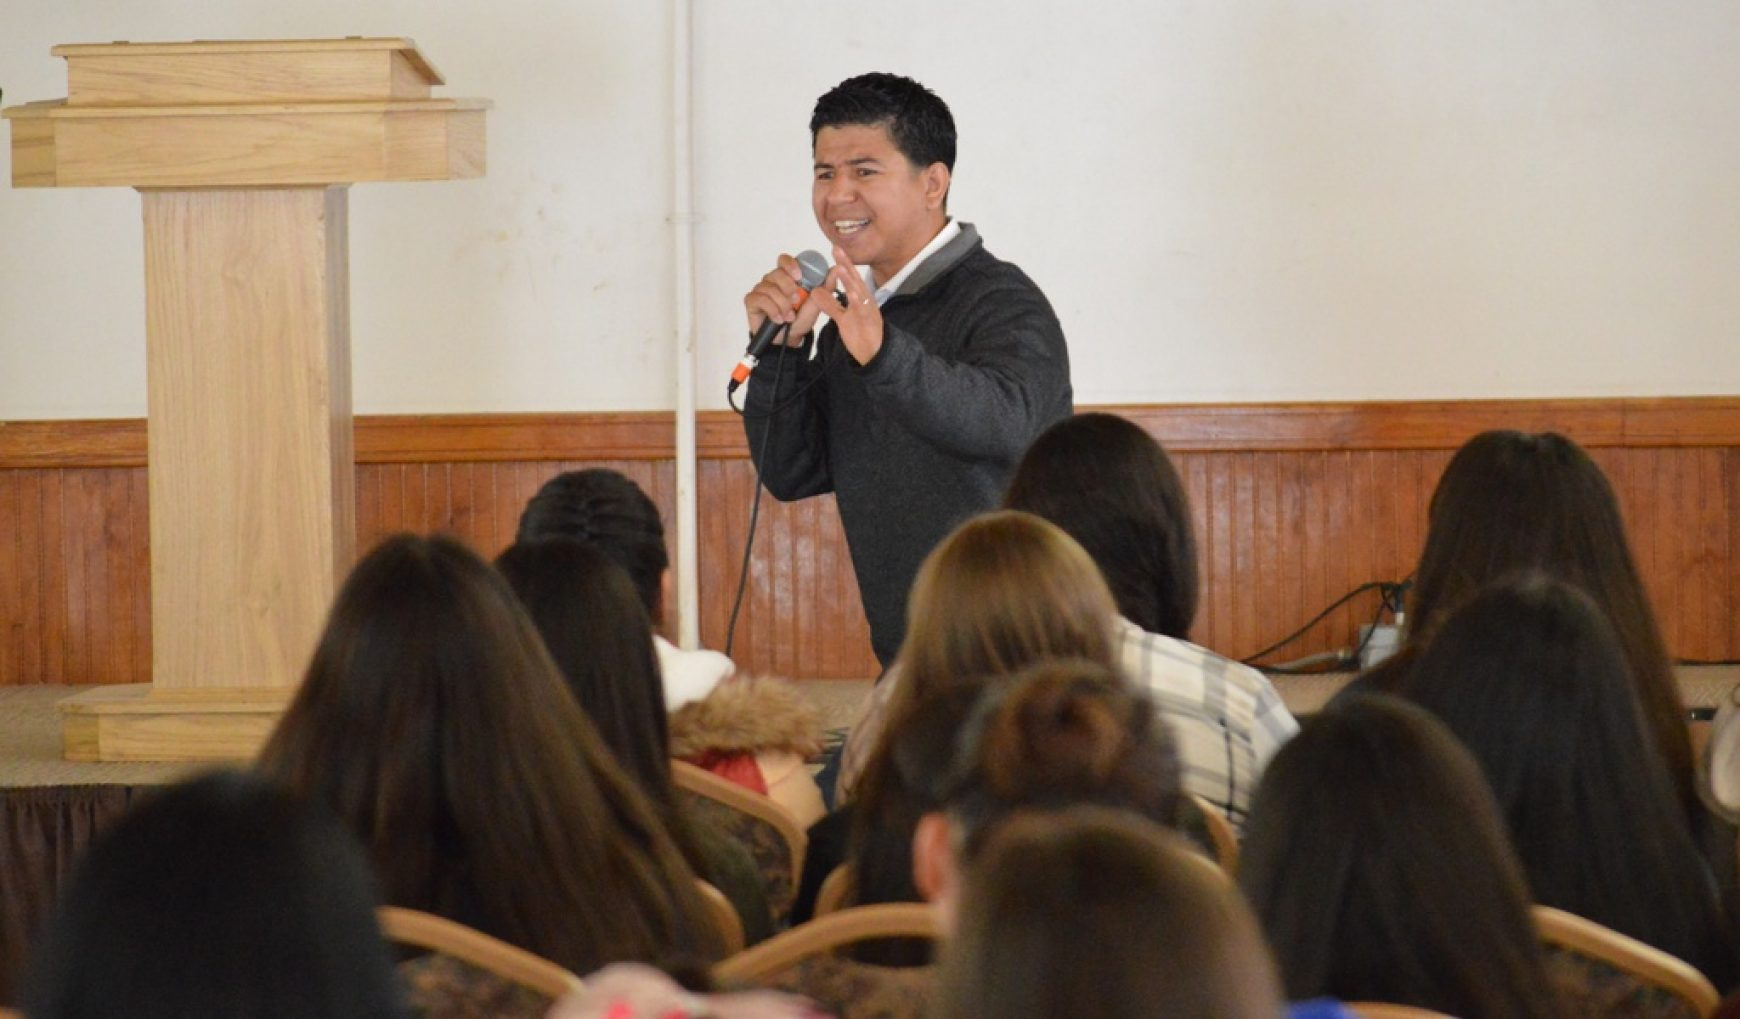 June 3, 2018 – Youth Camp – Bro. Marcial Tapia & Bro. Amos Roady